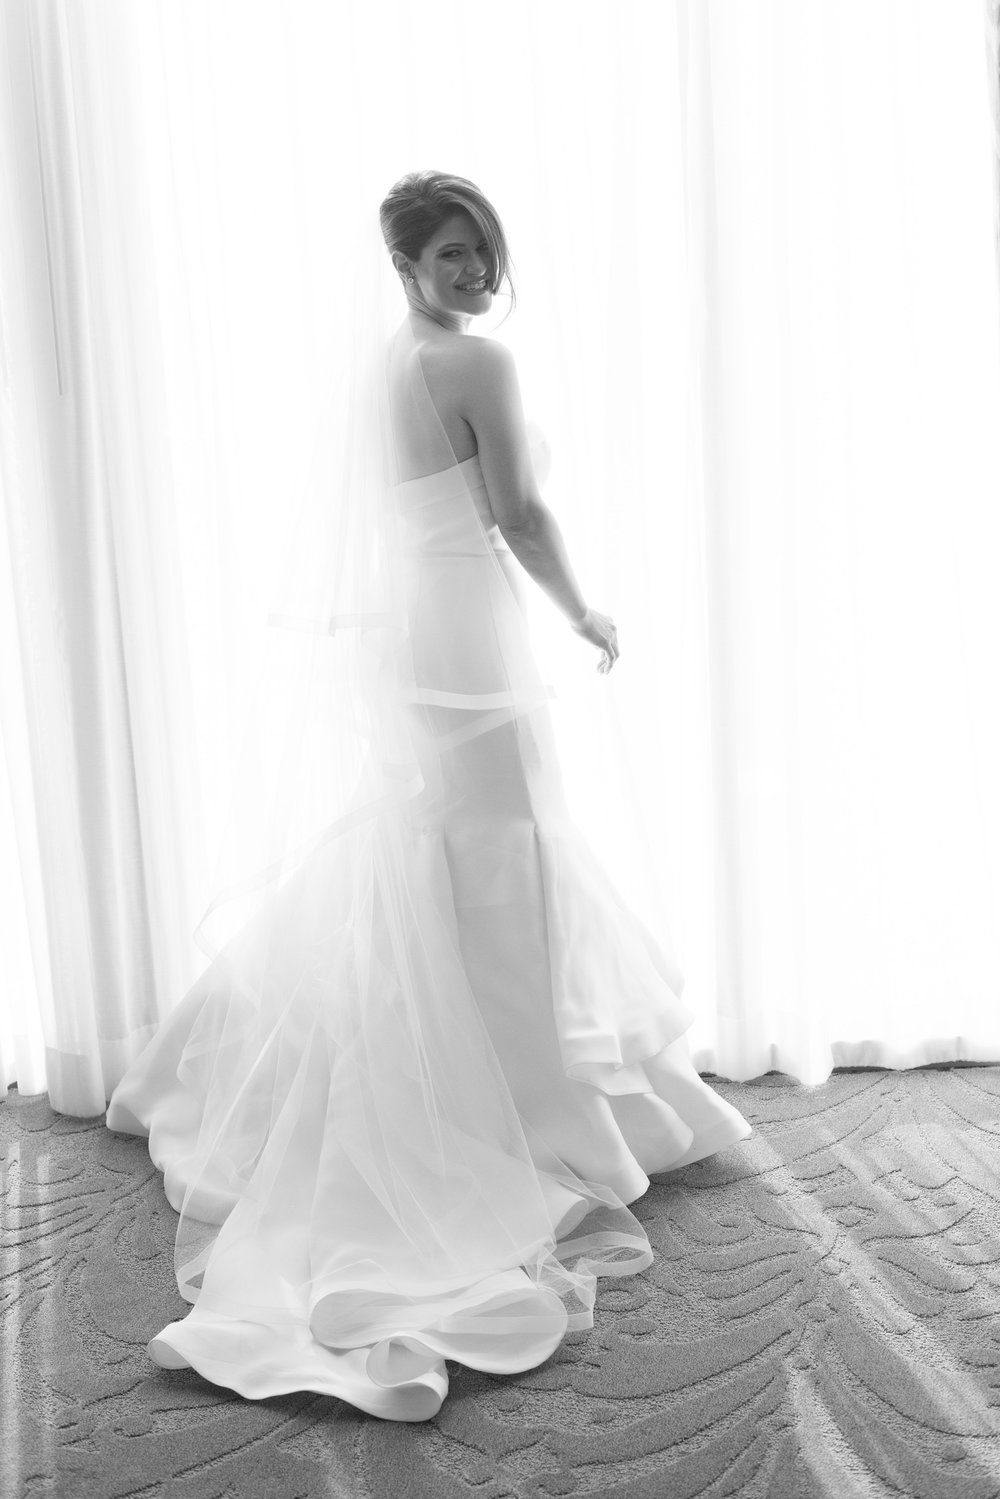 Bride in Sareh Nouri wedding dress.  Las Vegas Wedding Planner Andrea Eppolito.  Image by AltF Photography.